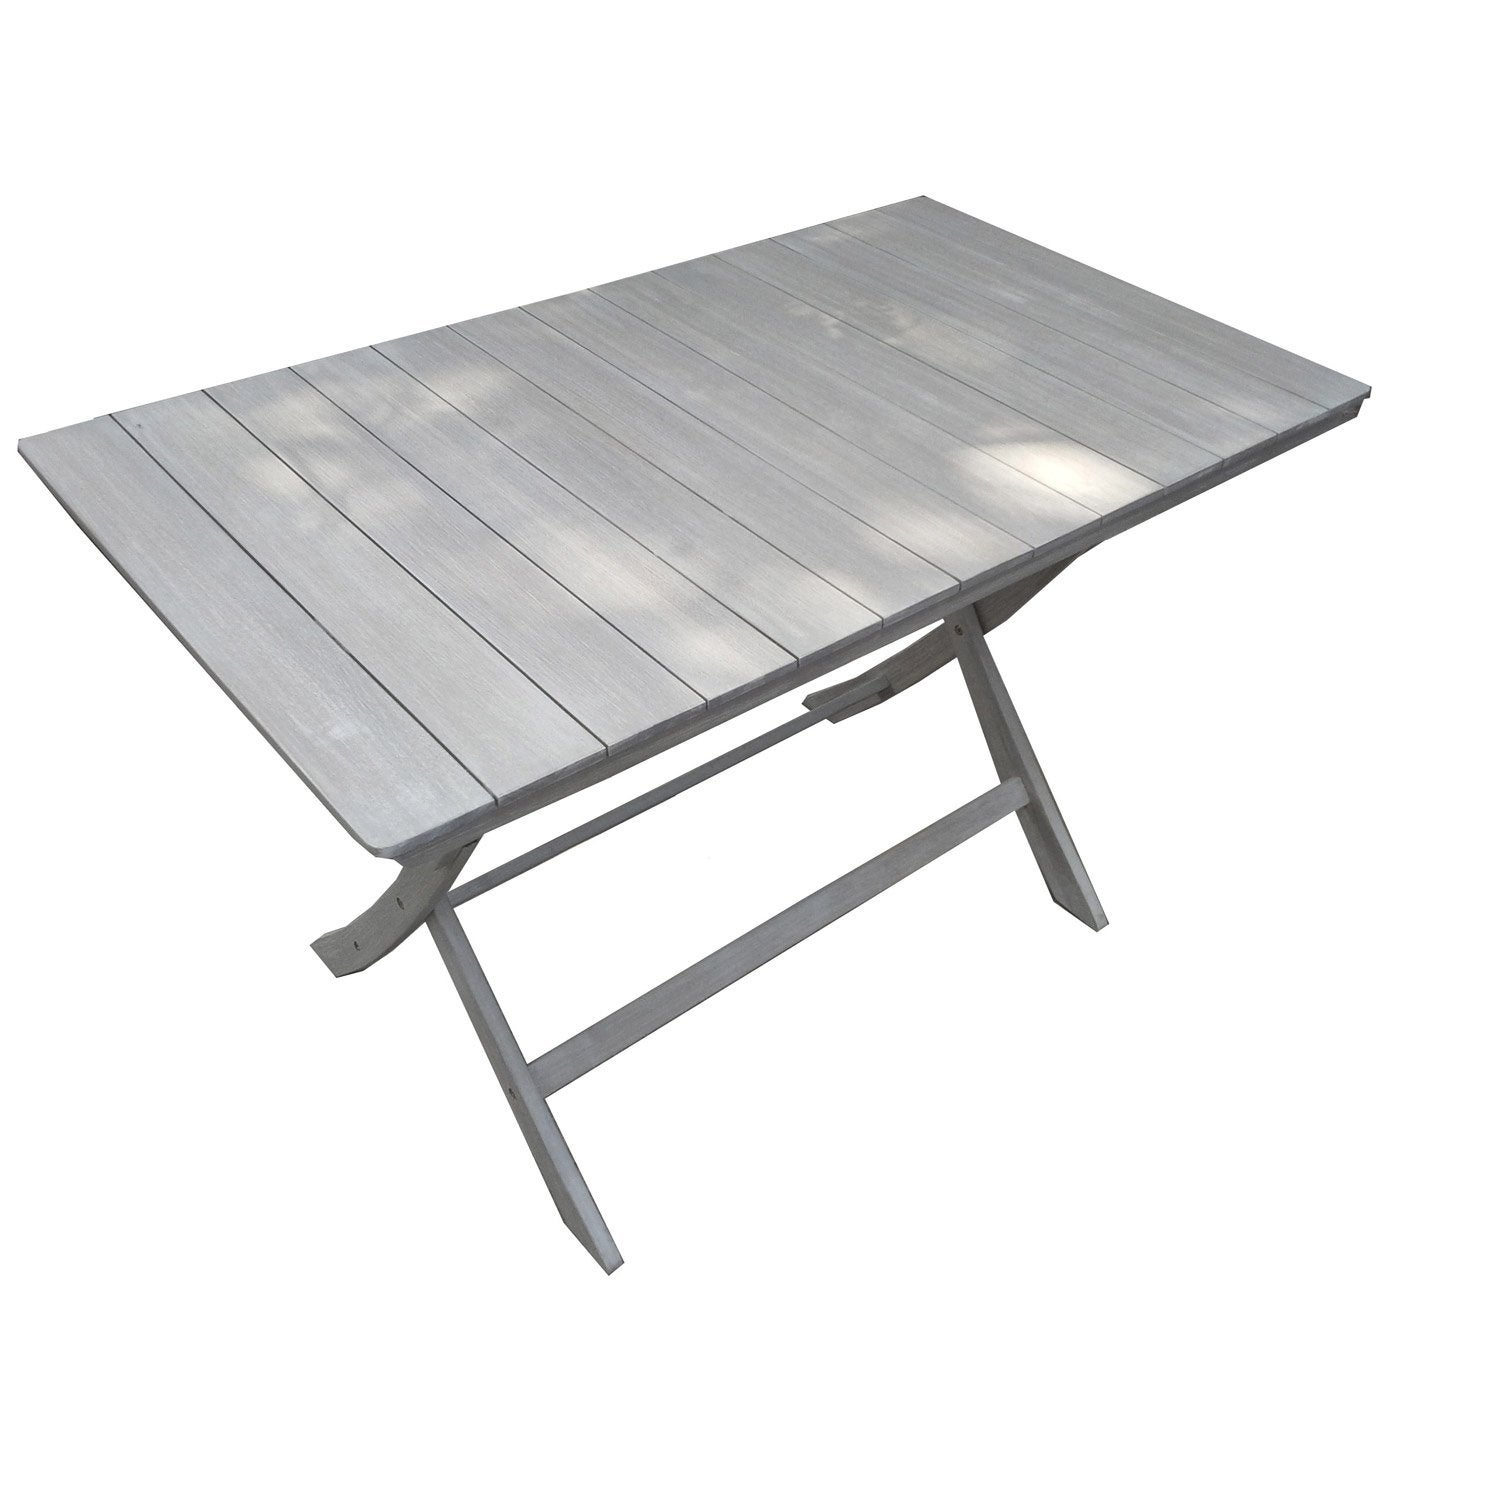 Table de jardin naterial portofino rectangulaire gris 4 - Table rabattable leroy merlin ...